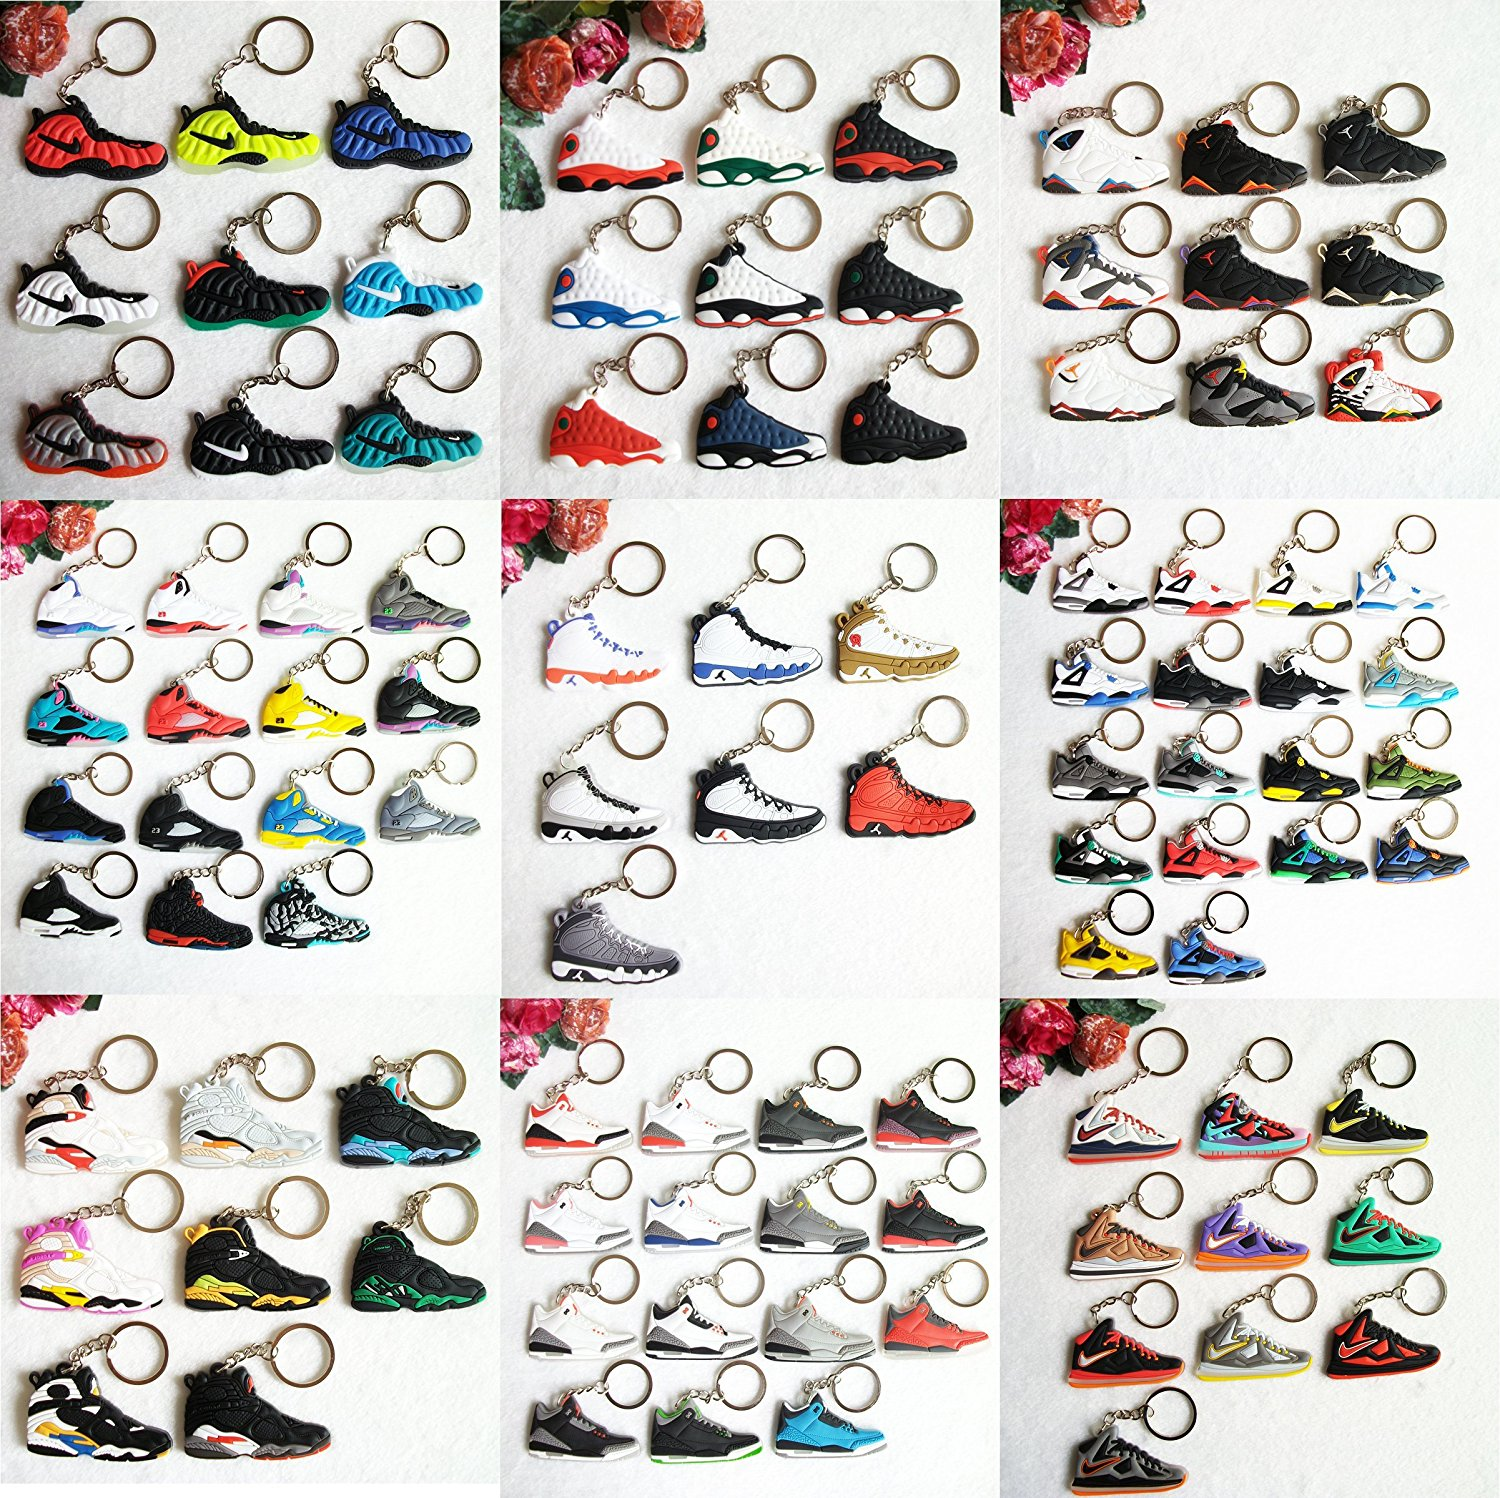 brand new 89fc1 d715d Get Quotations · Nike Air Jordan Foamposite Lebron Kobe New Balance Variety  Sneaker Keychains (Set of 23)